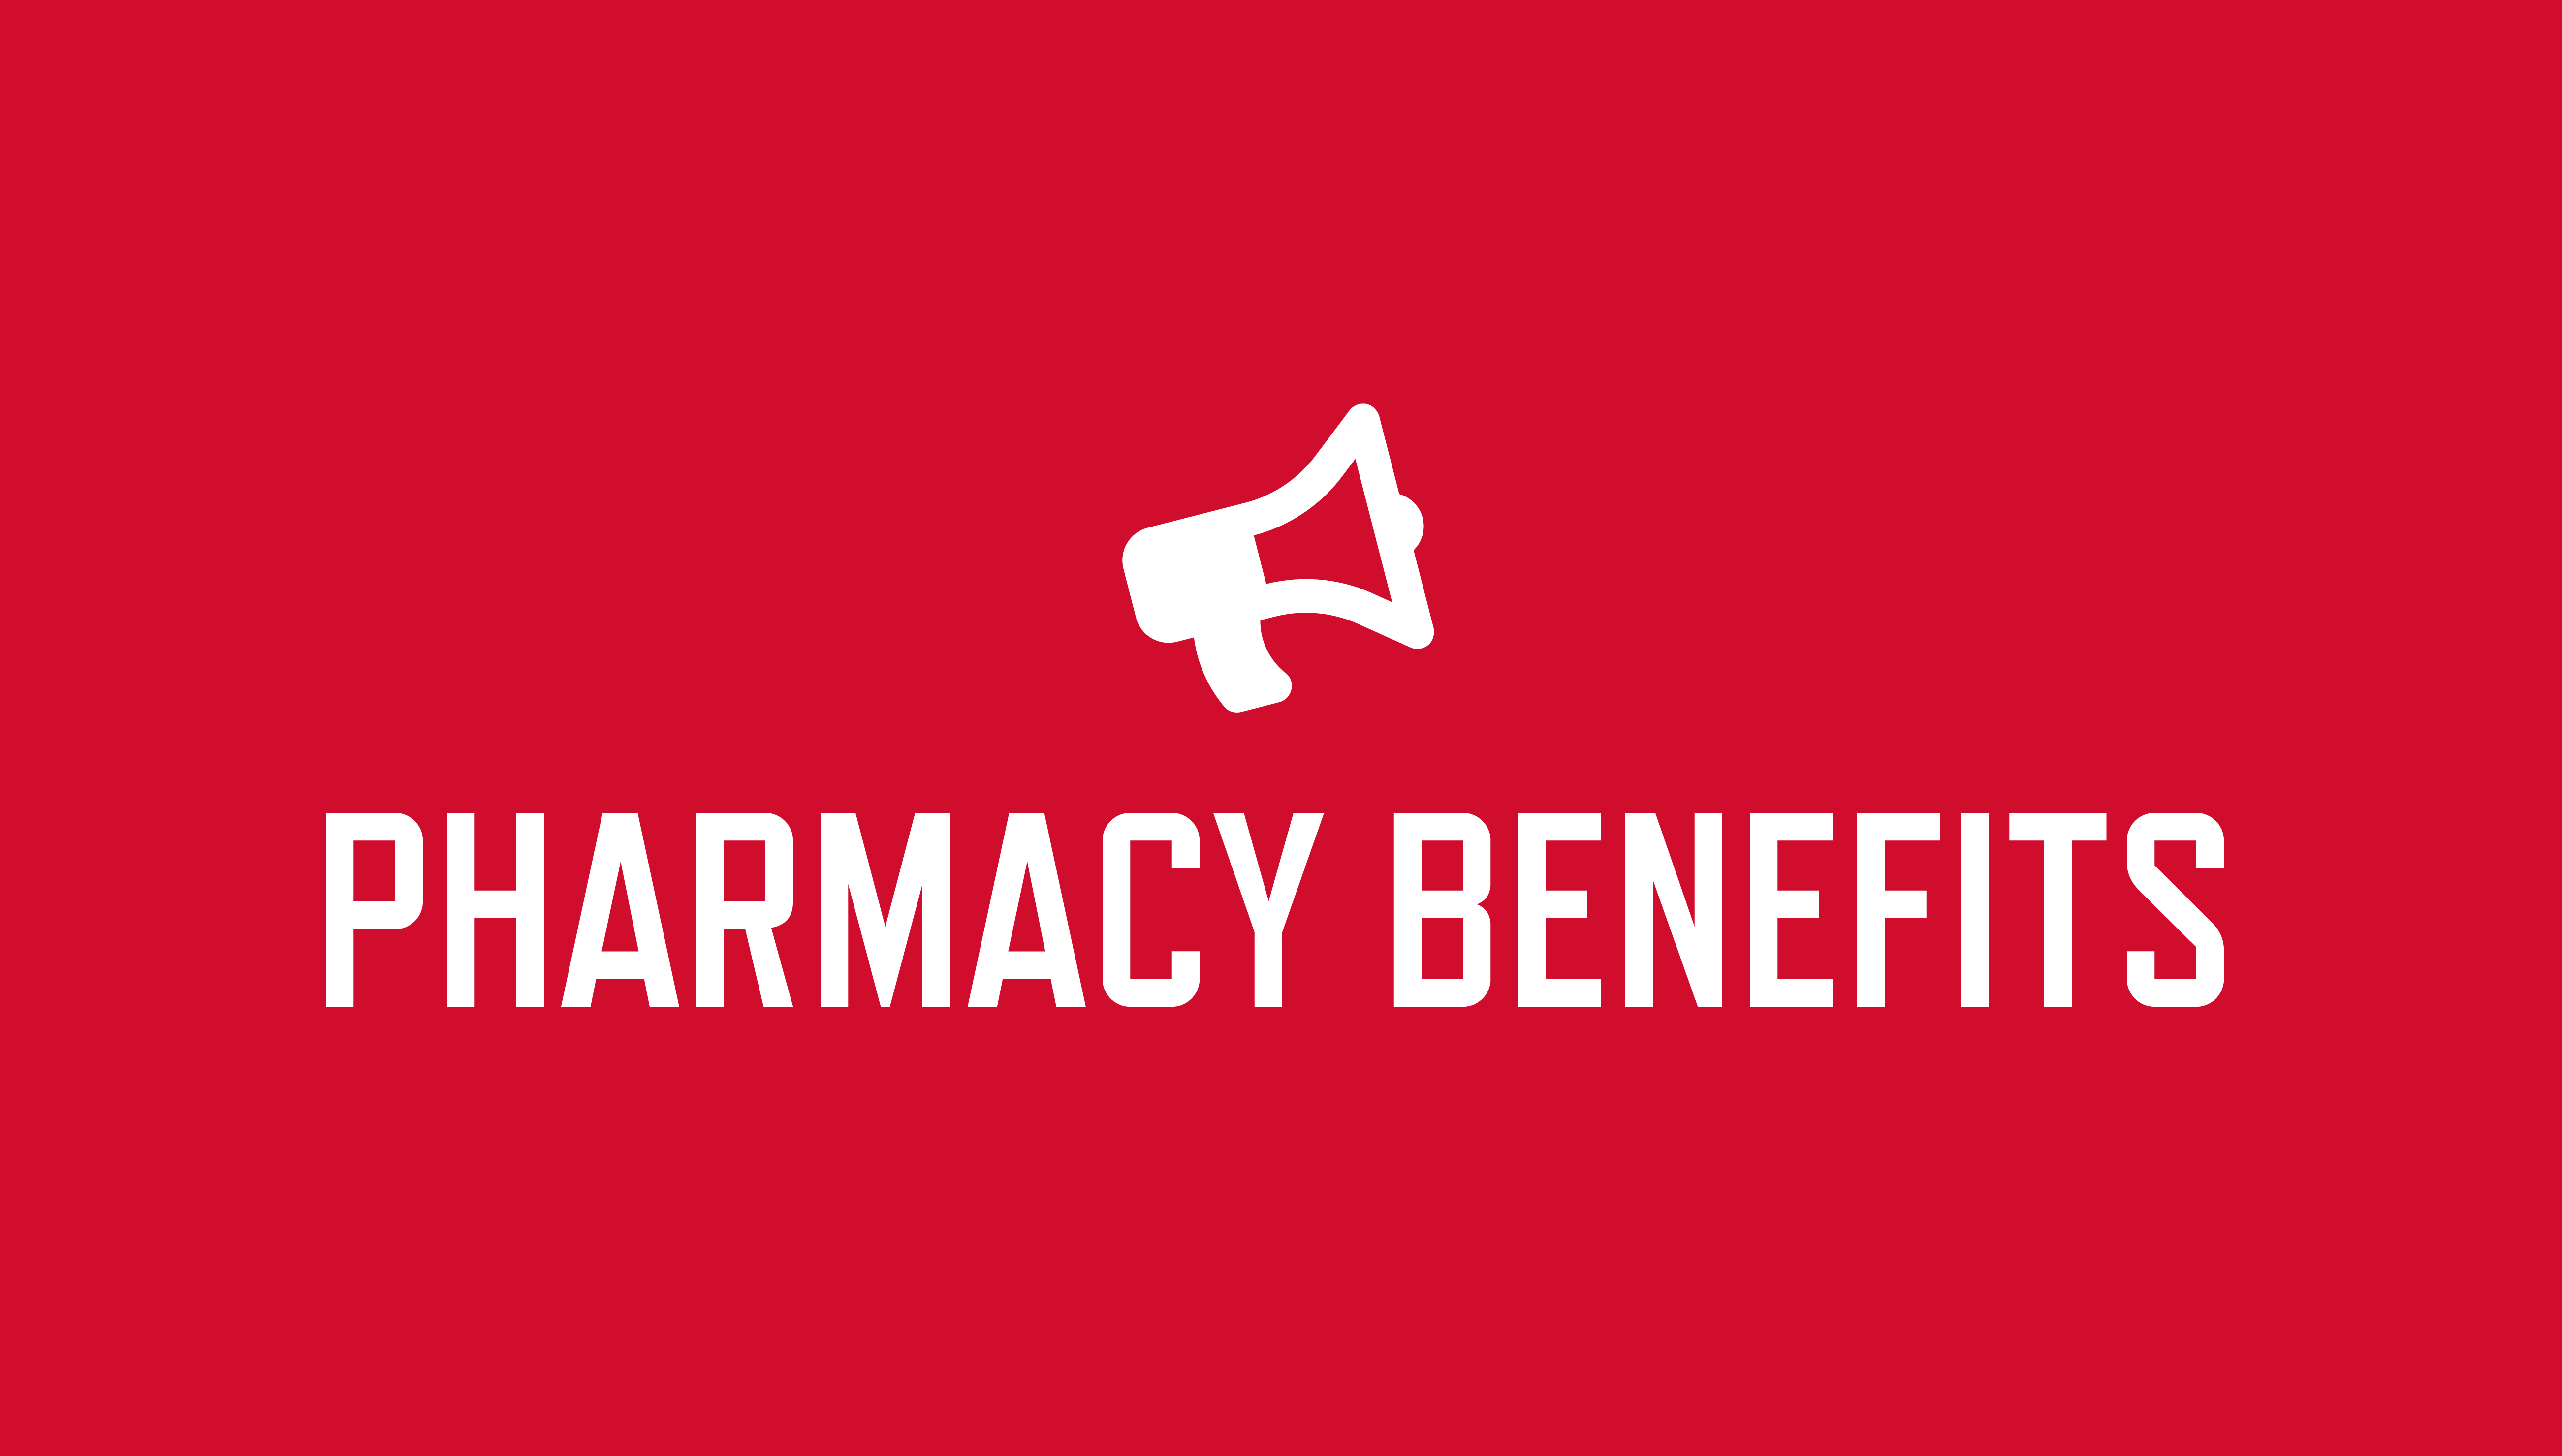 red background and pharmacy benefits text